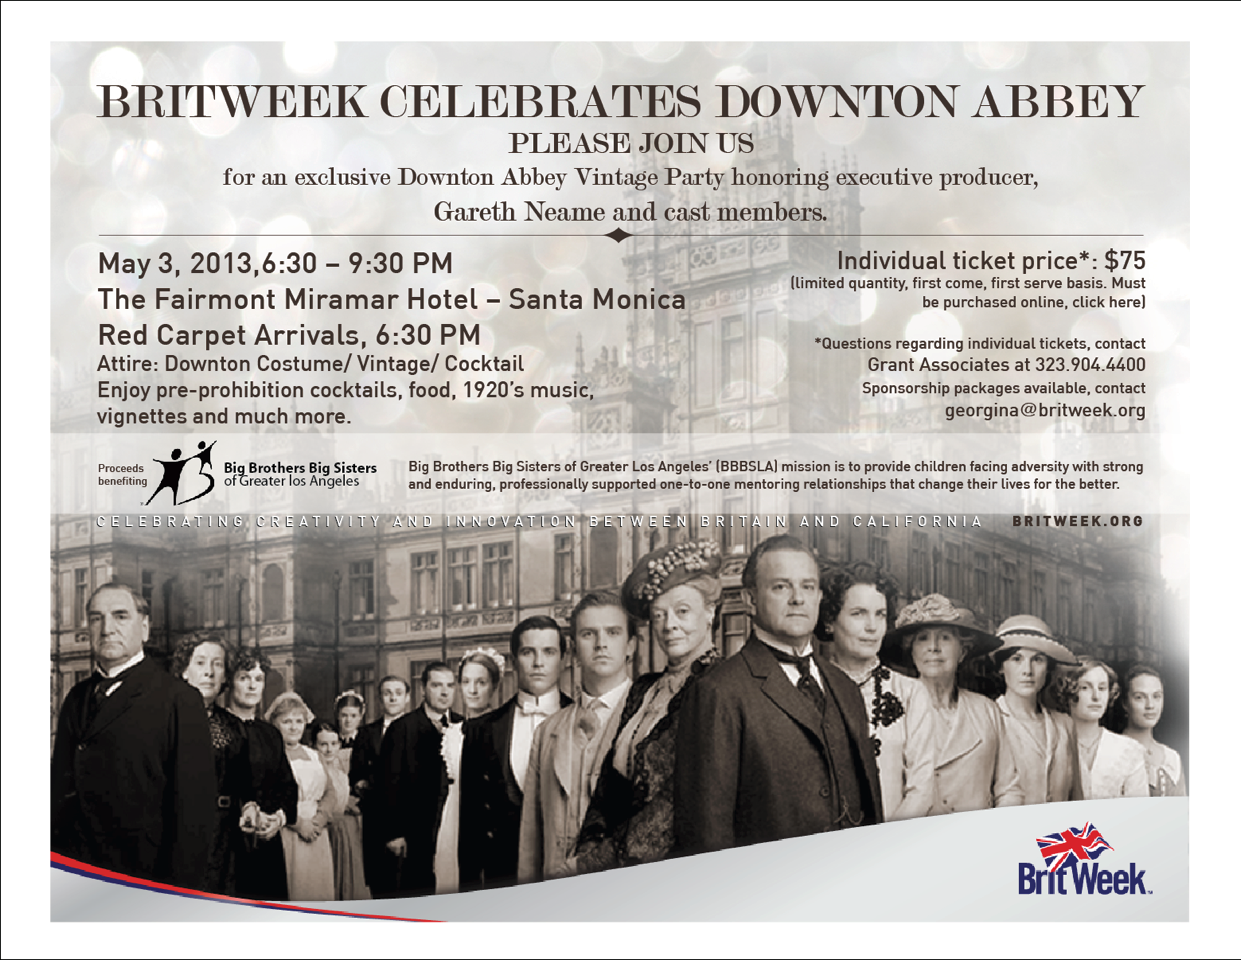 Brits in la newsletter april 8th 2013 for Downton abbey tour tickets